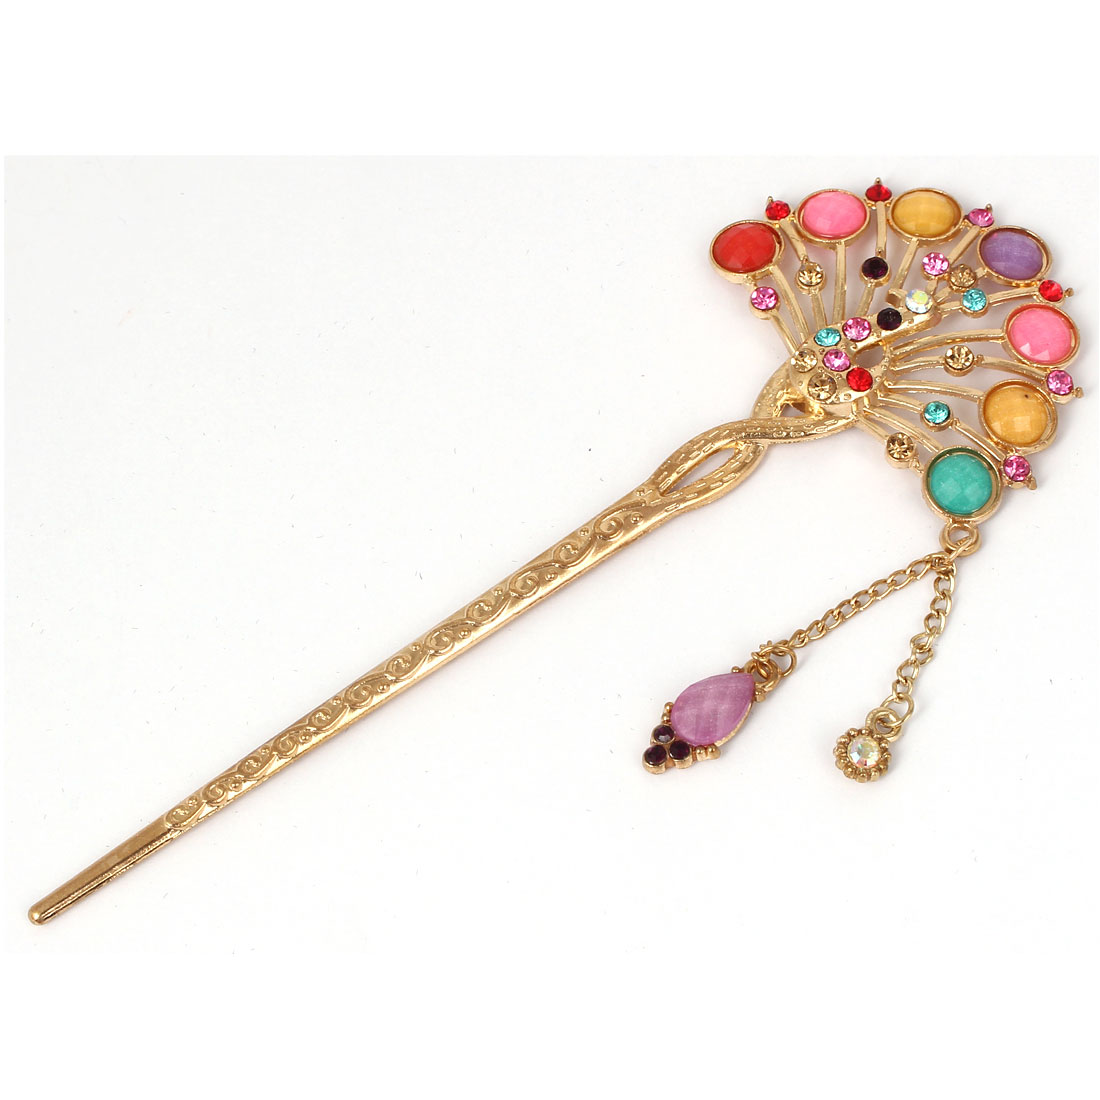 Women Faux Rhinestone Inlaid Peacock Shaped Hairpin Hair Clasp Stick Colorful